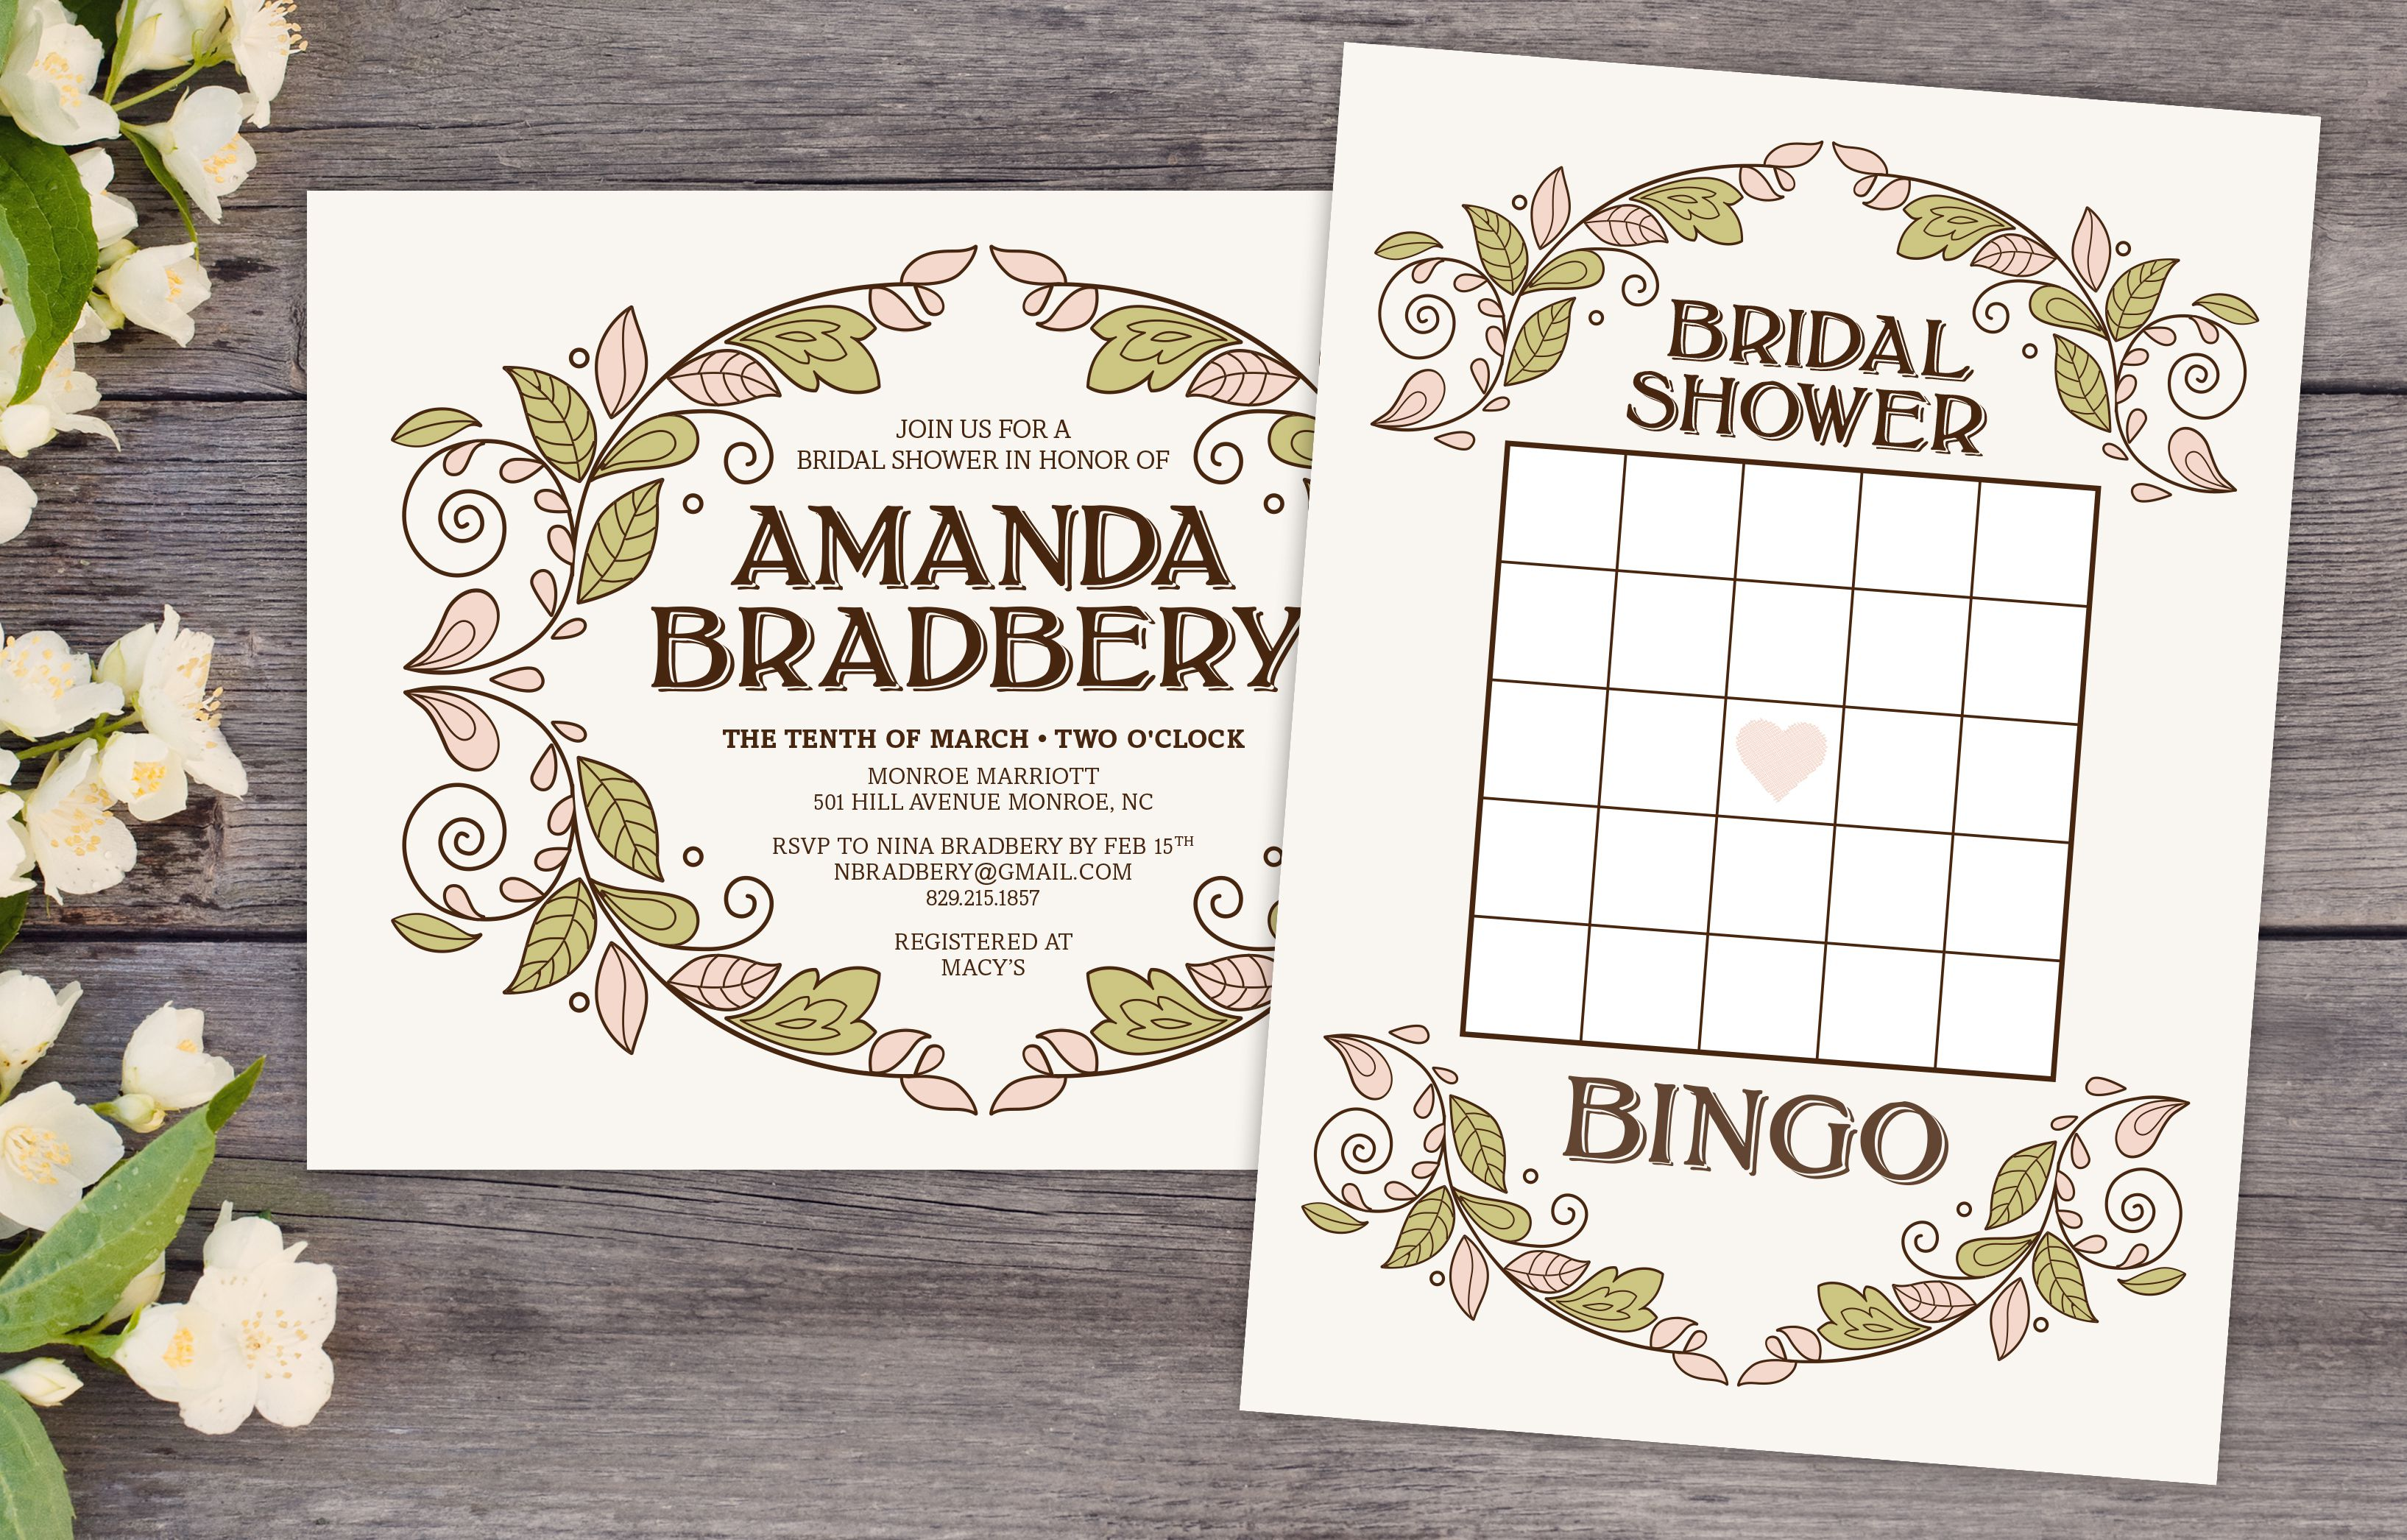 bc627944e255 A bridal shower bingo card and bridal shower invitation on a wooden table  surrounded by flowers